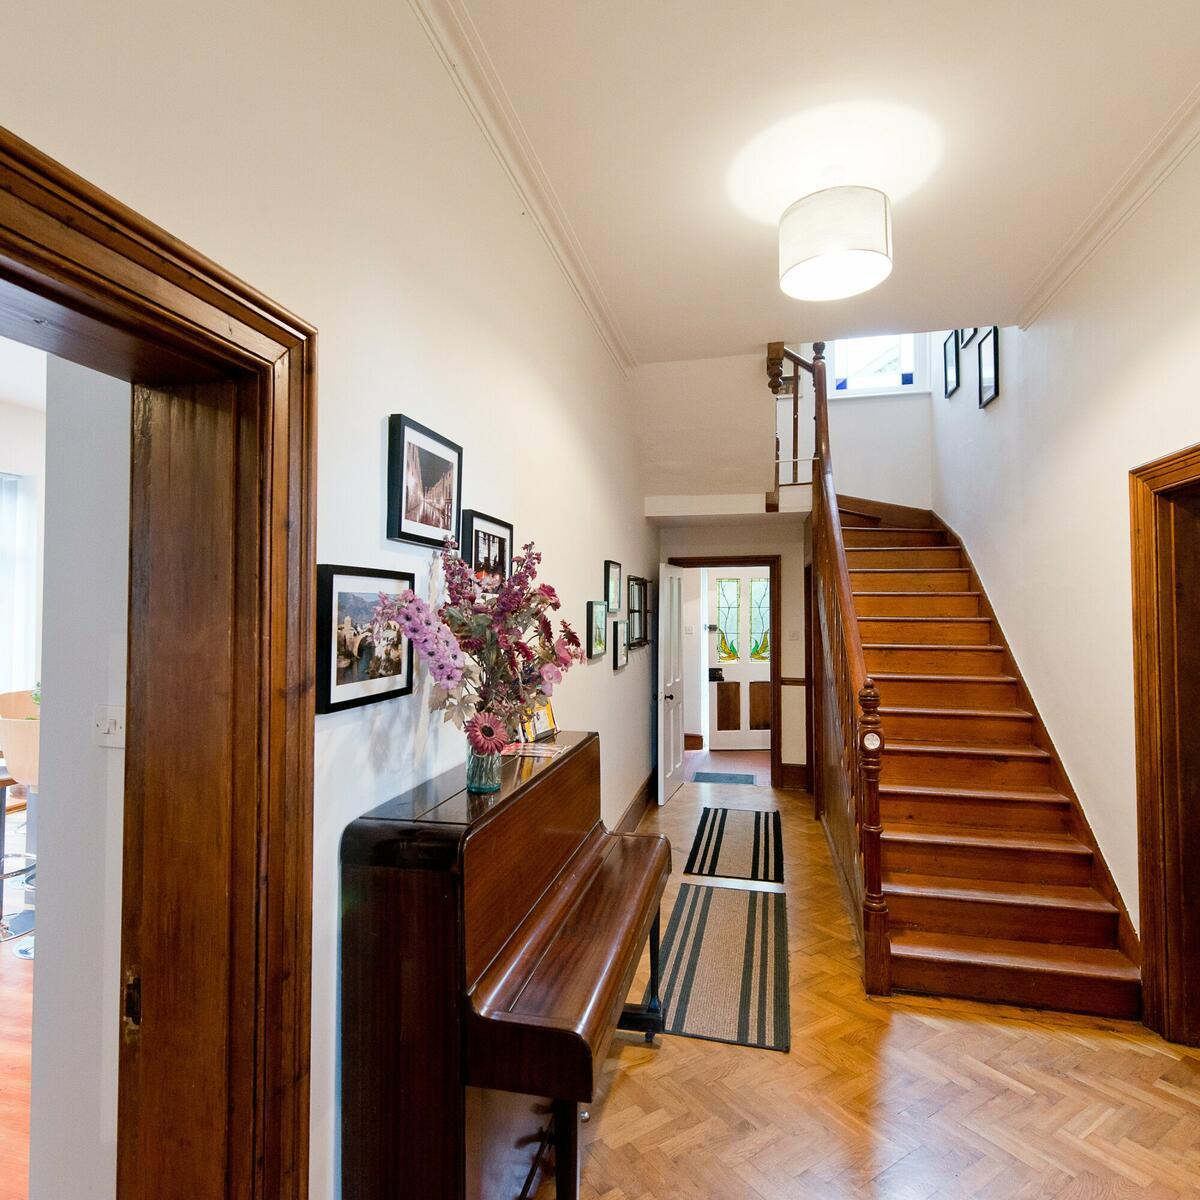 The piano may not be in tune but it fits in with the classic wooden decor